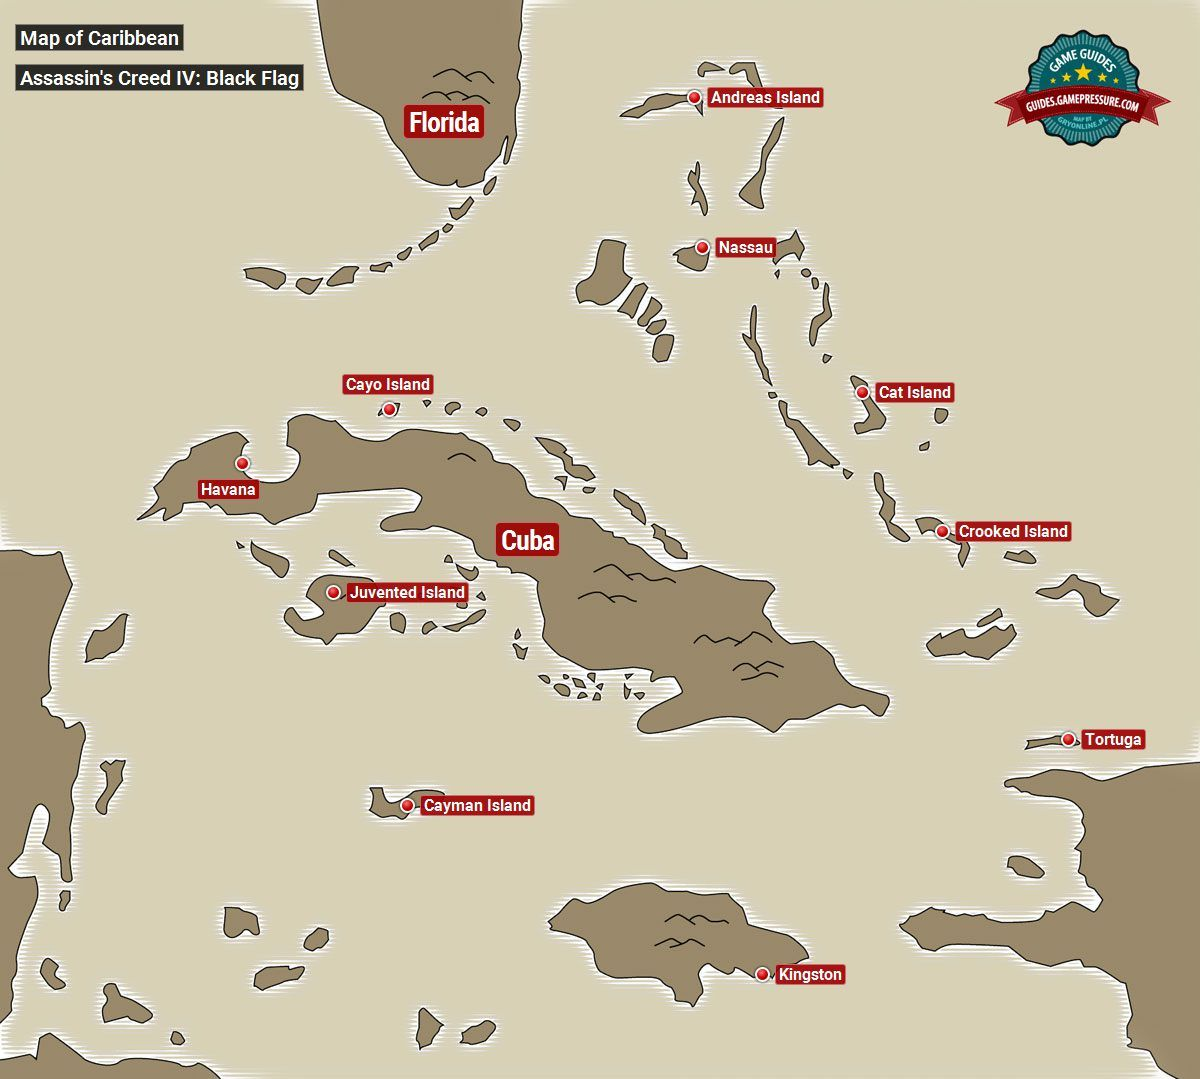 Map Of Caribbean Assassin S Creed Iv Black Flag Assassins